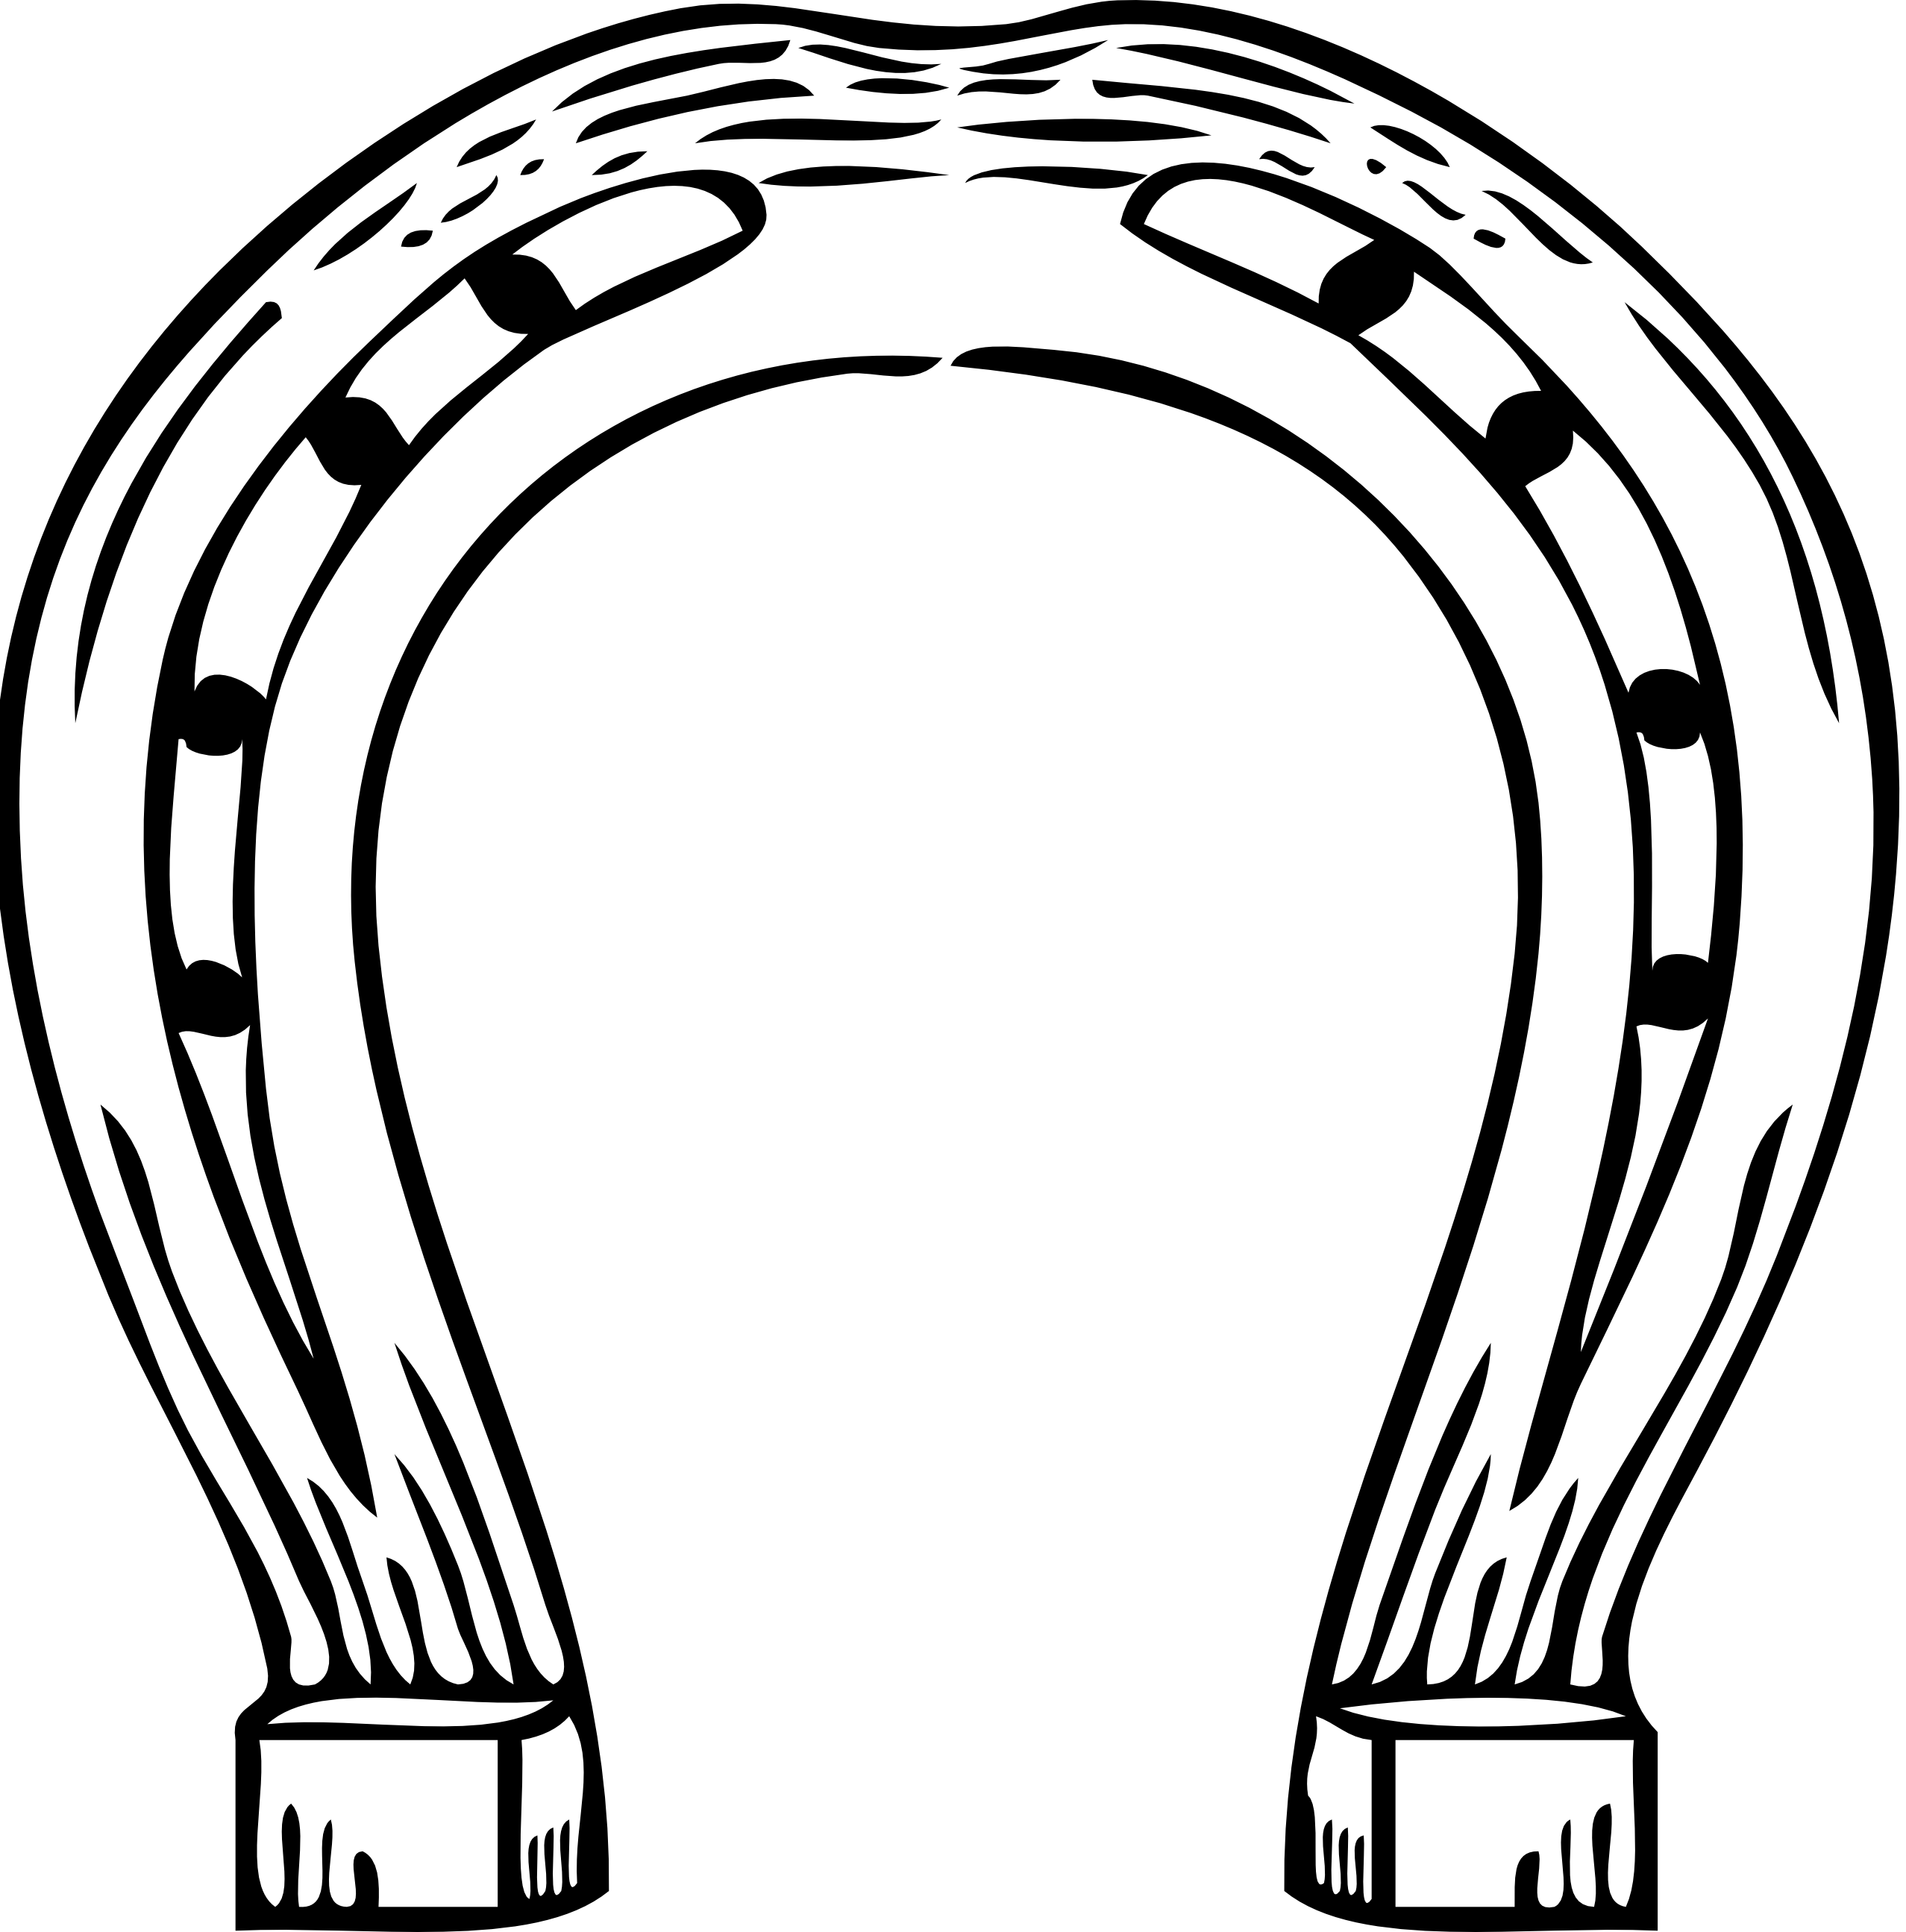 horse shoe clipart black and  - Clipart Horseshoe